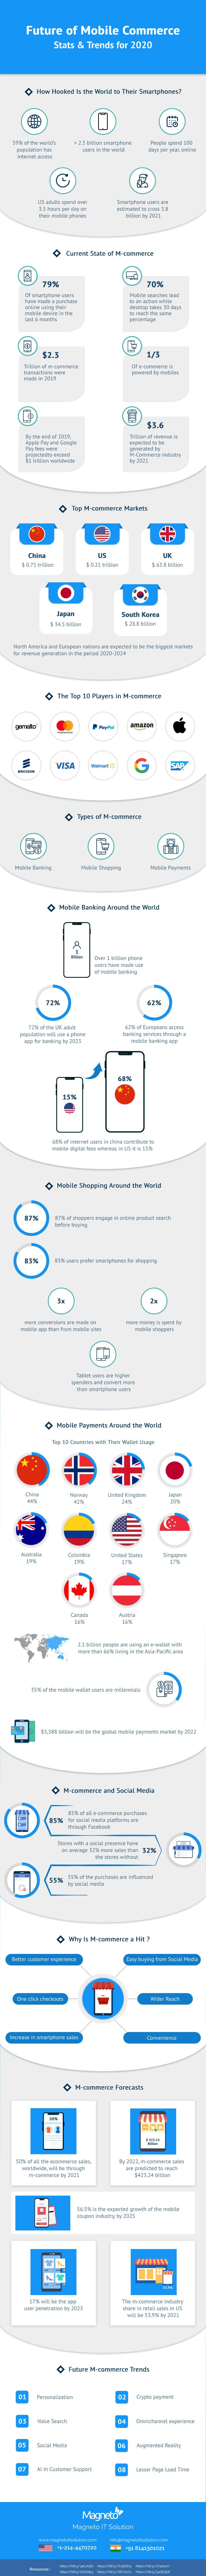 Future Of m-commerce_infographic with statistcs